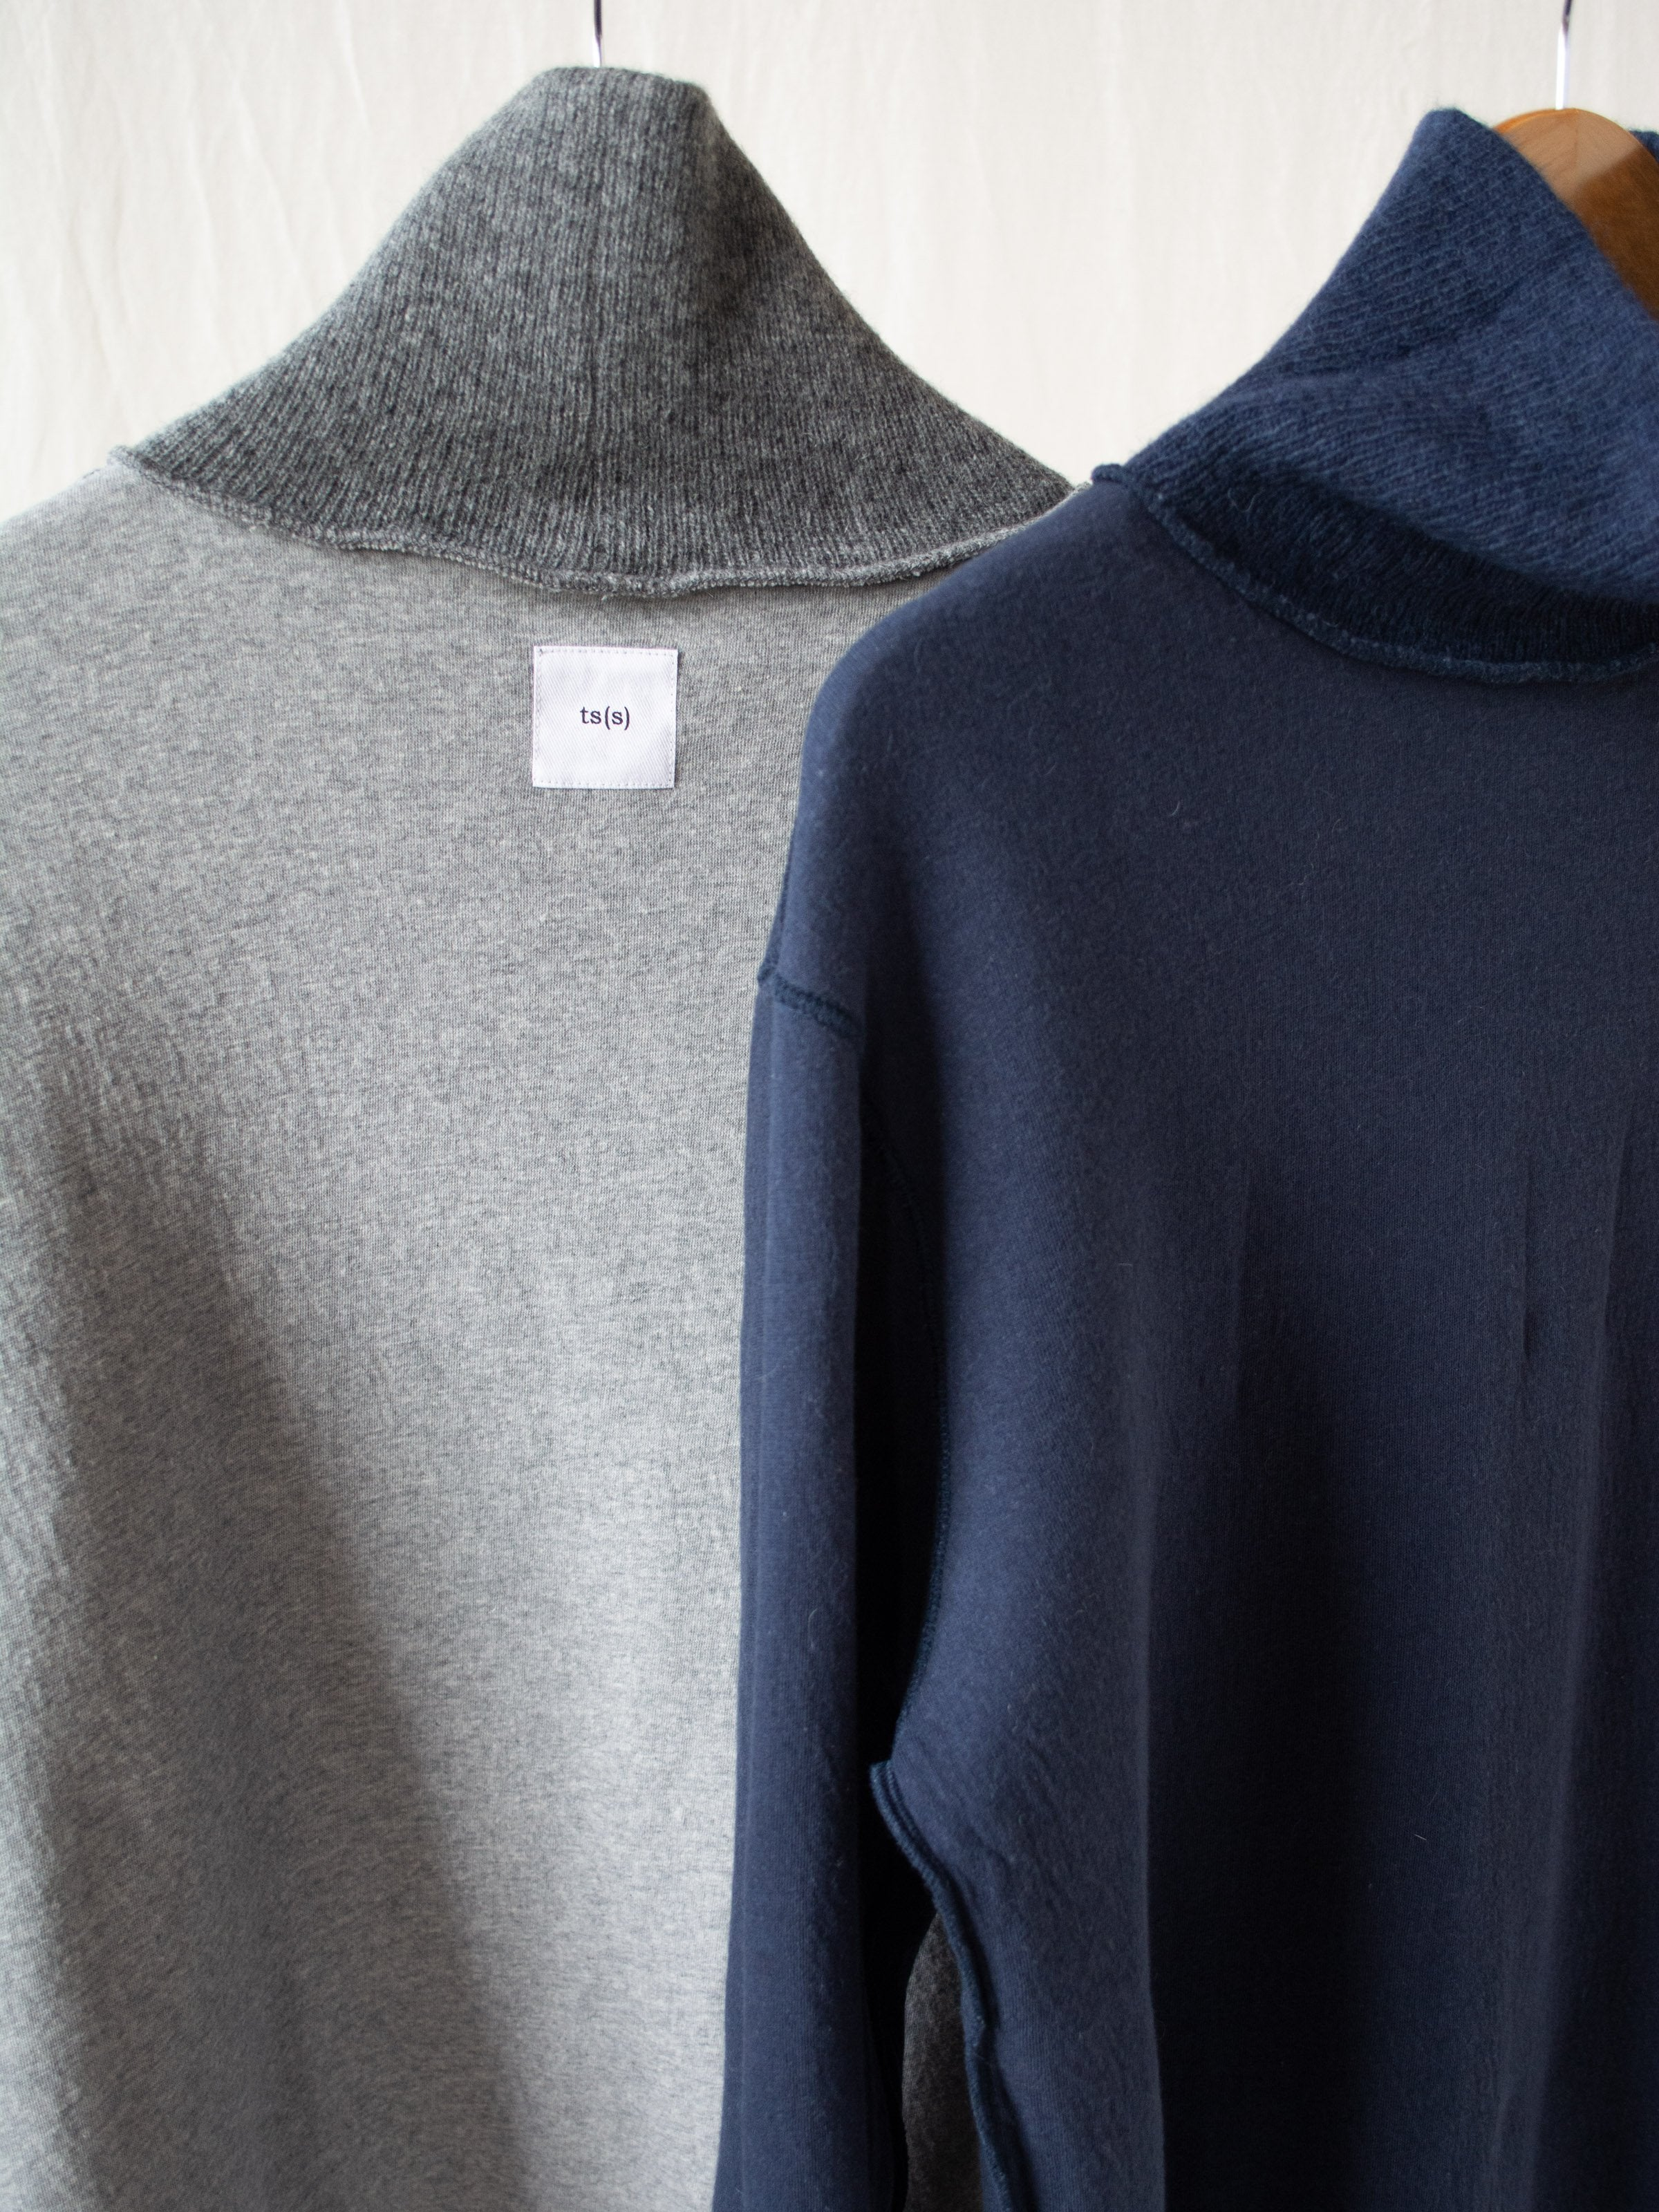 Namu Shop - ts(s) Wool Blend Turtleneck with Double Face Jersey Lining - Navy